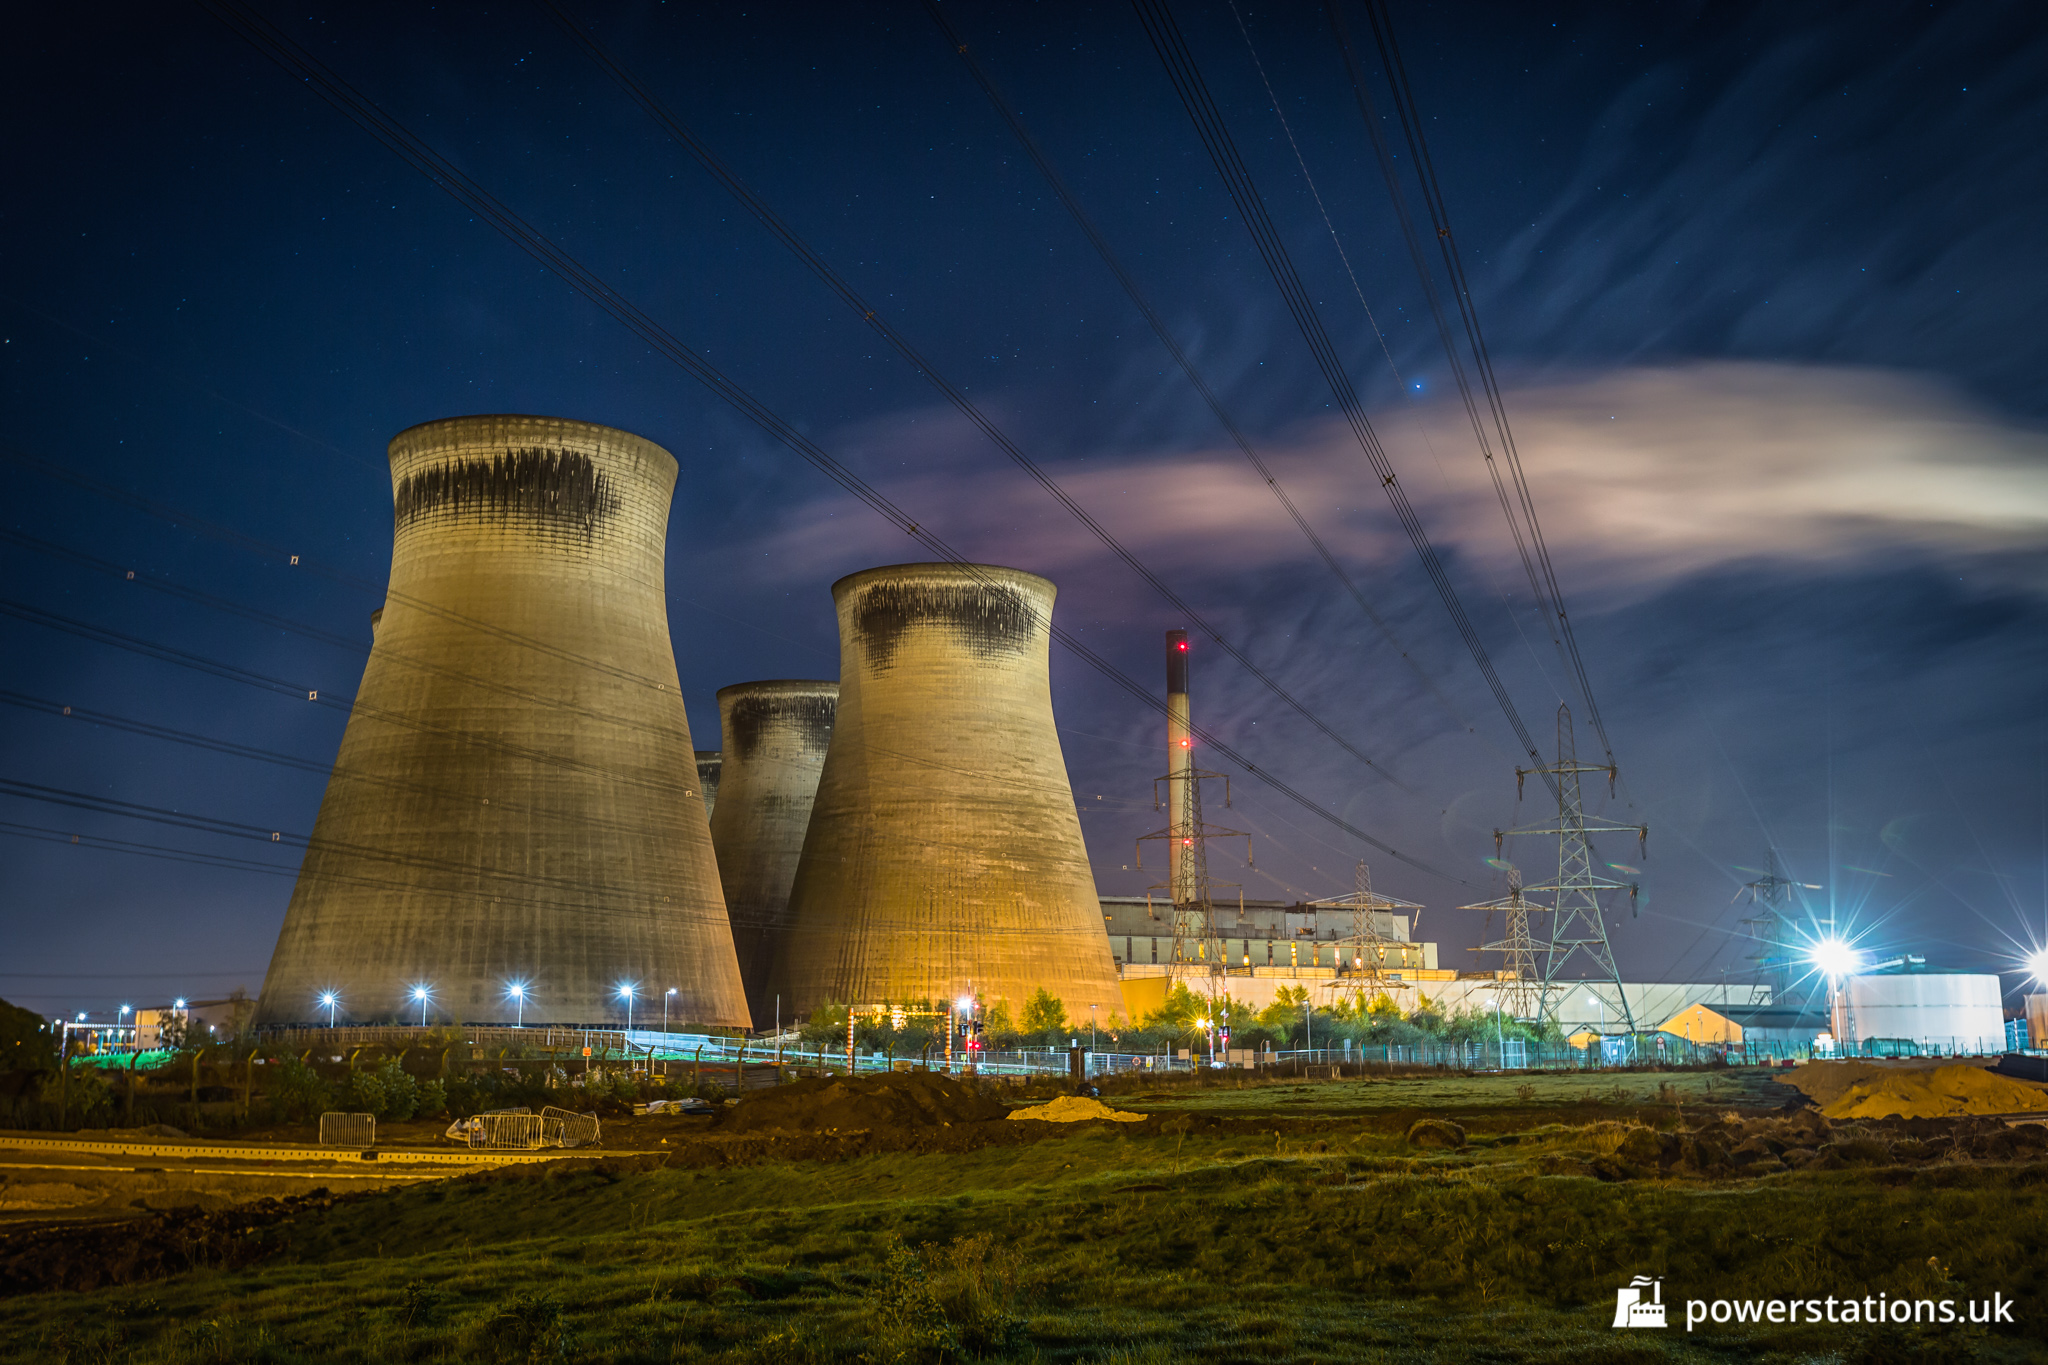 Ferrybridge C Power Station, West Yorkshire – Power Stations